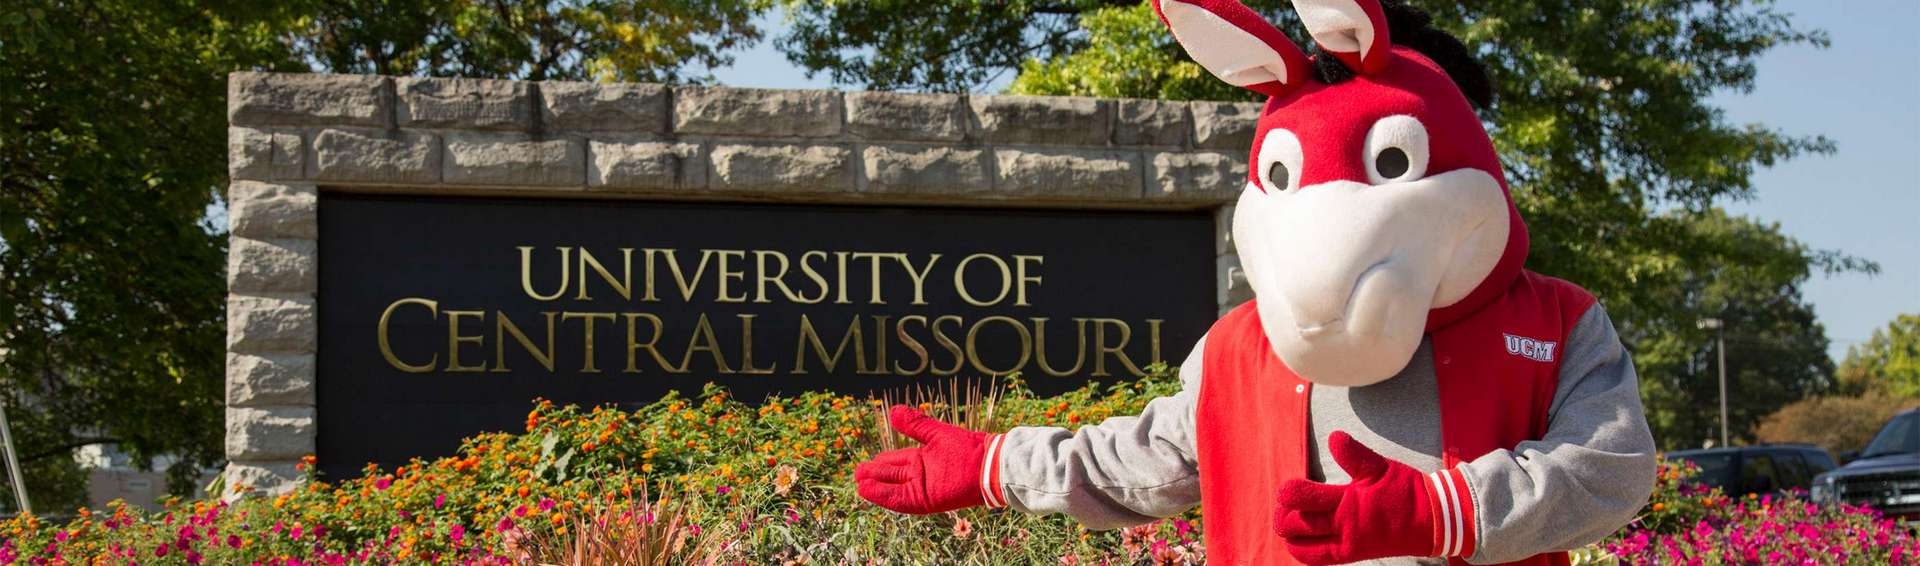 Mo the Mule in front of University of Central Missouri sign